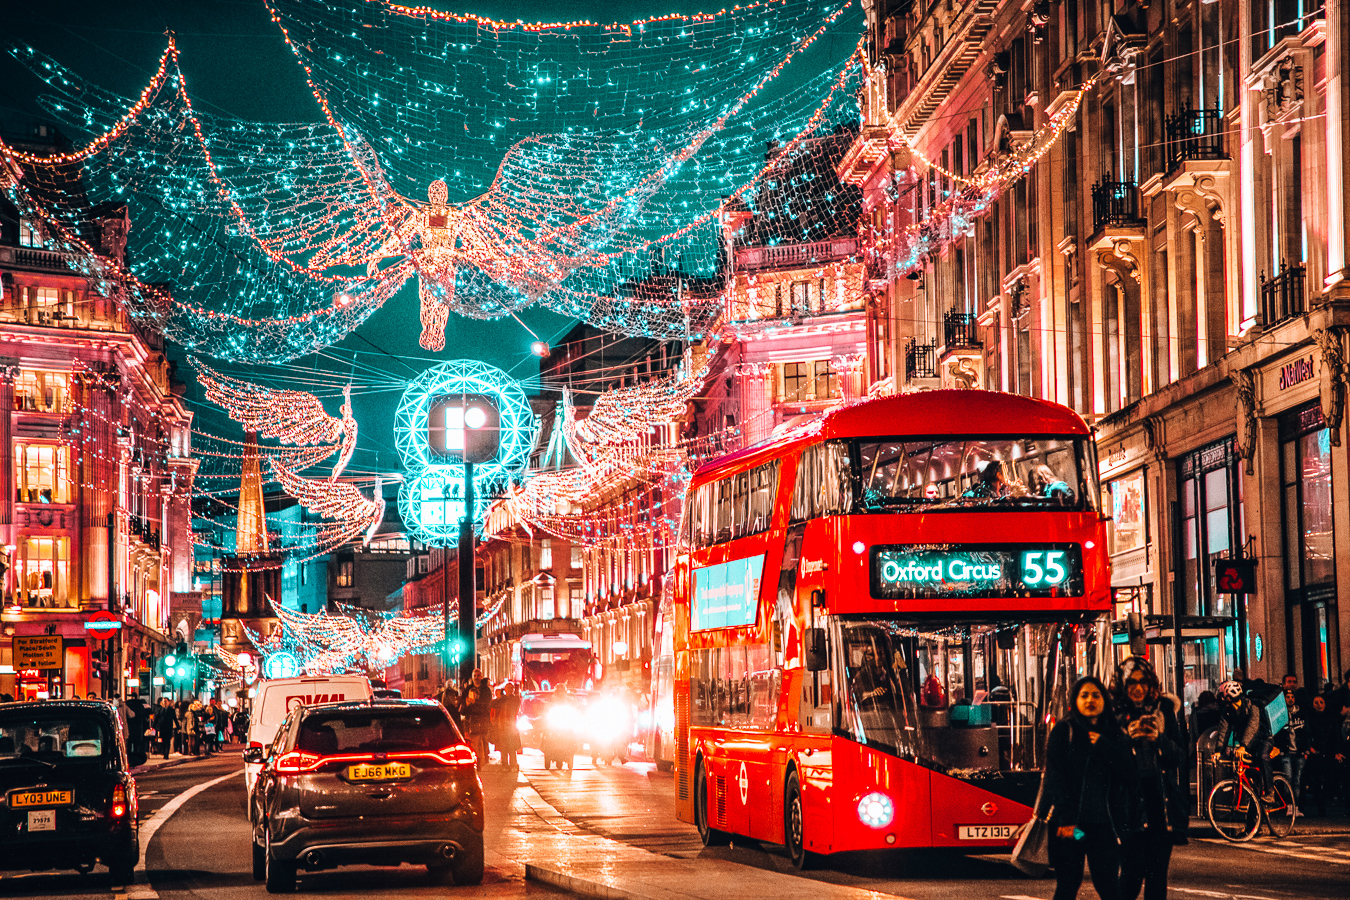 Christmas decorations in London during night